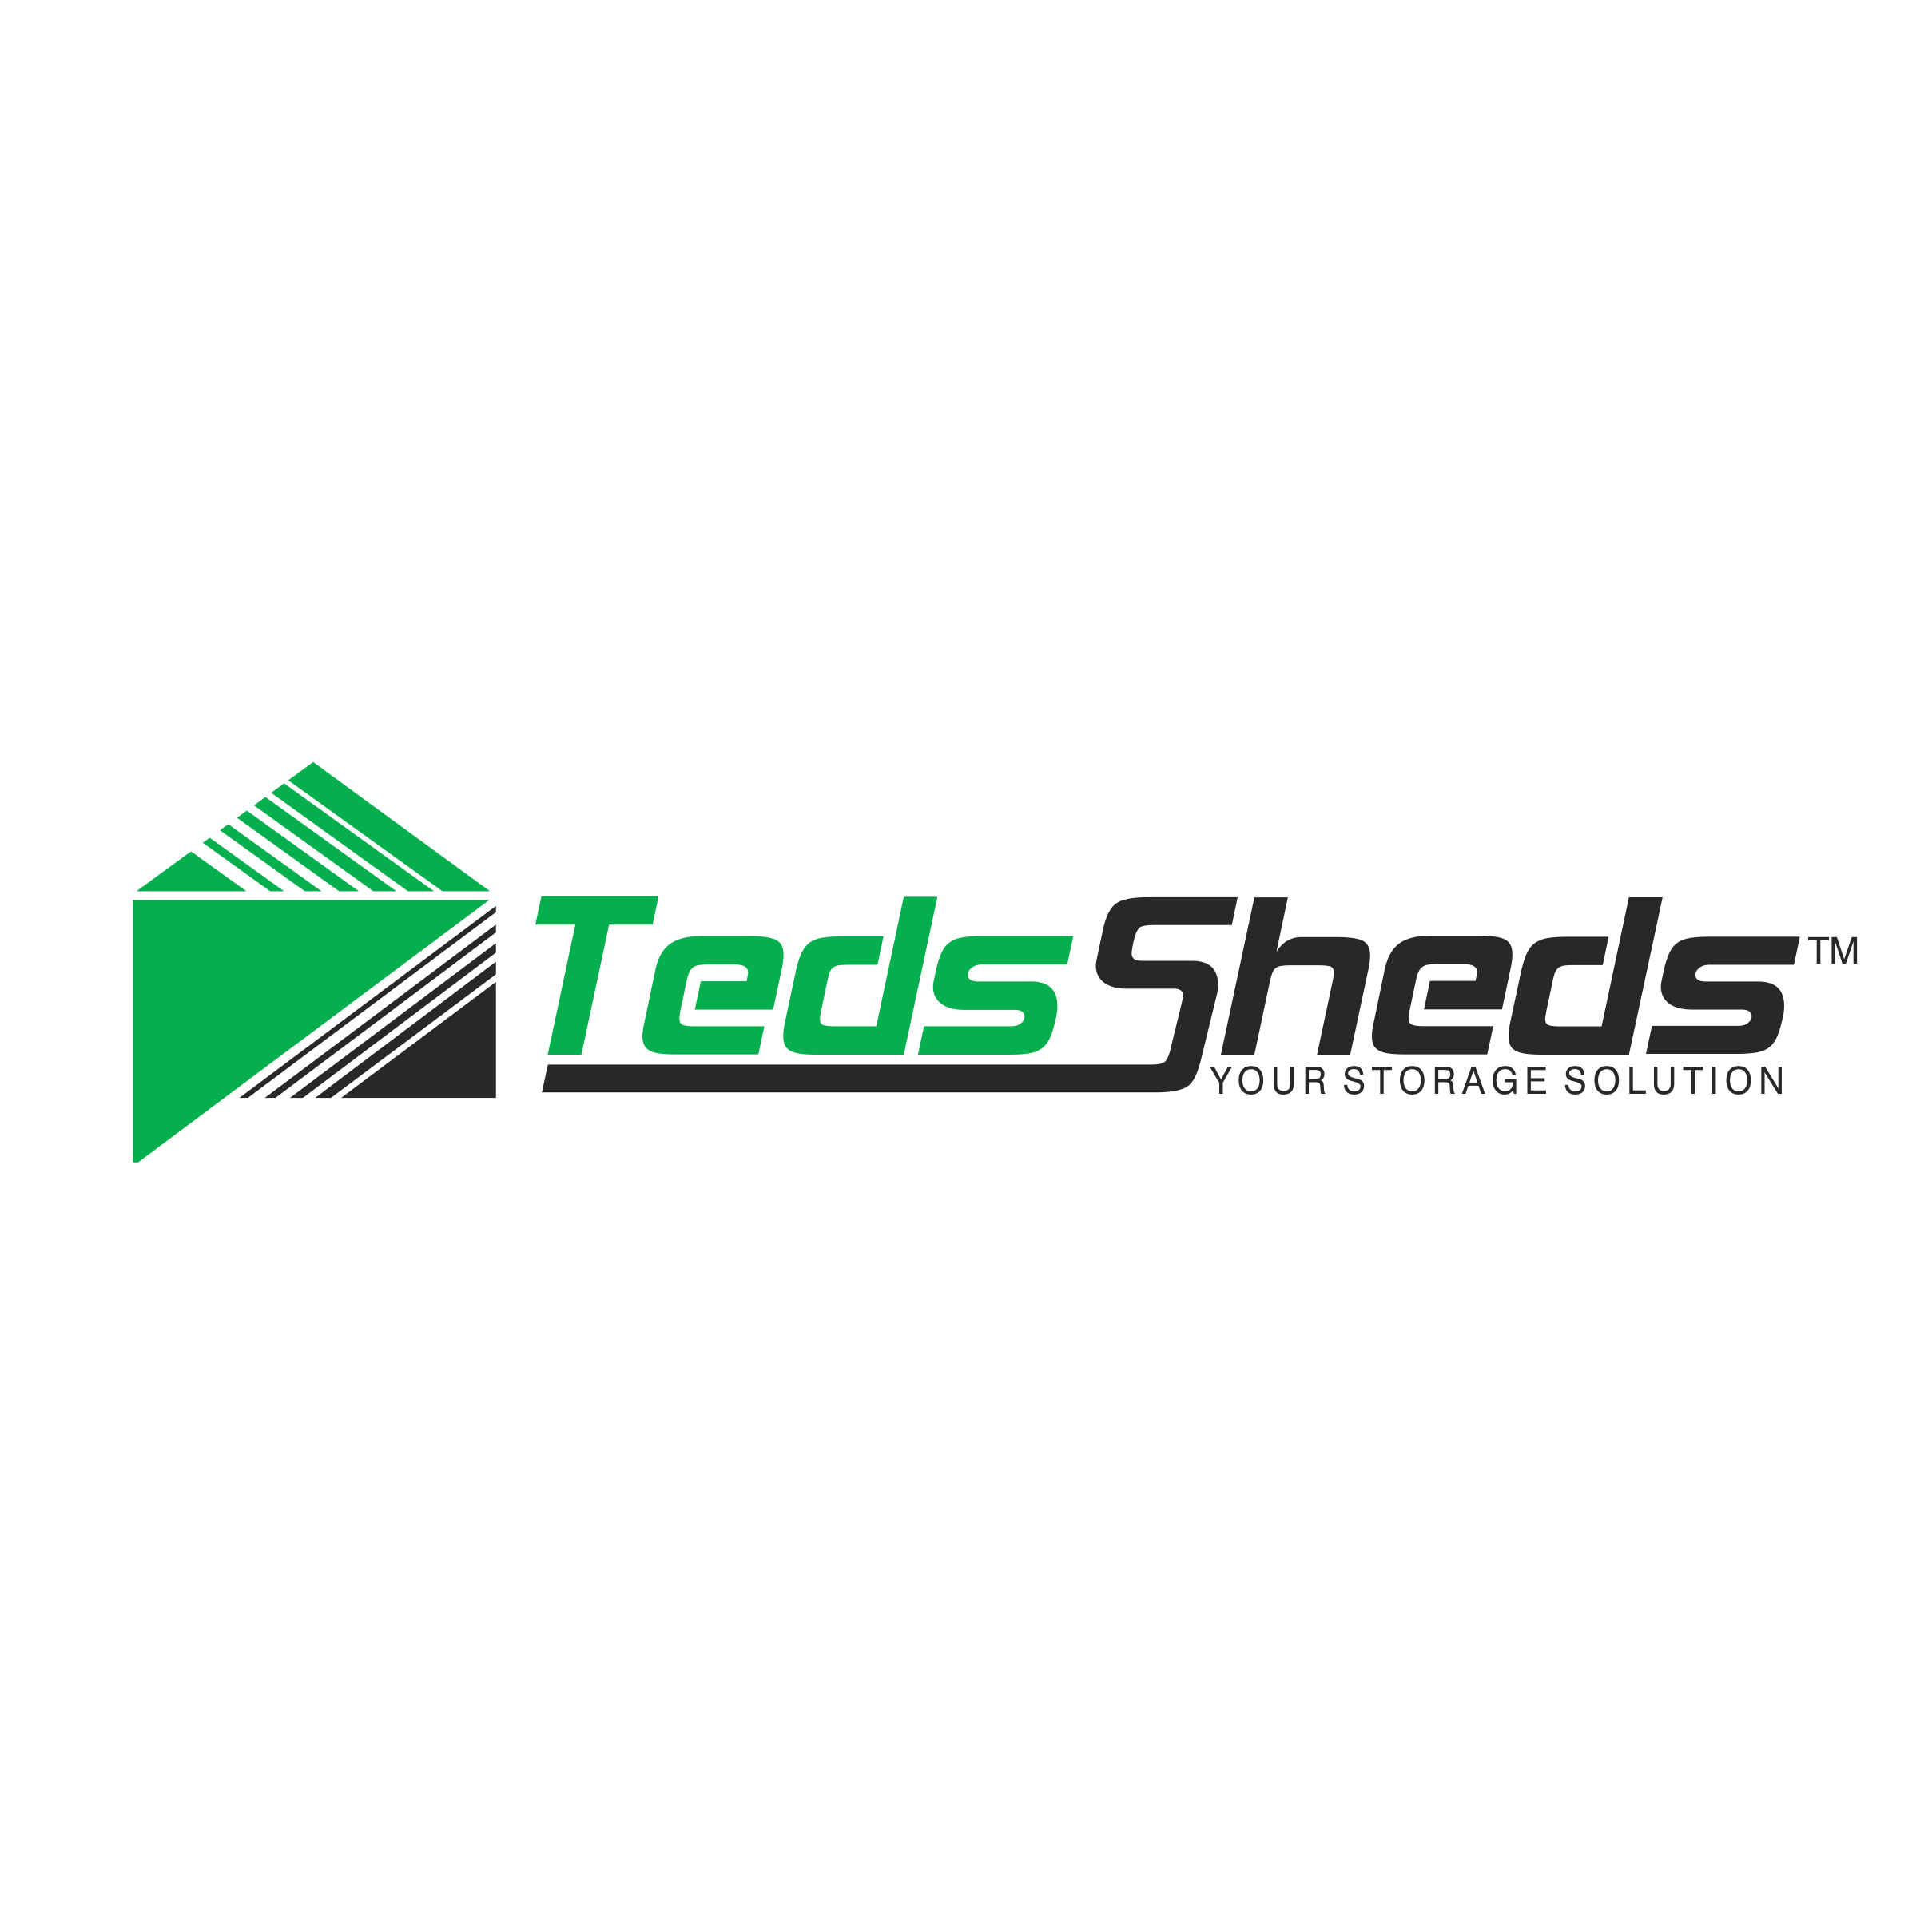 Ted's Sheds Colorado